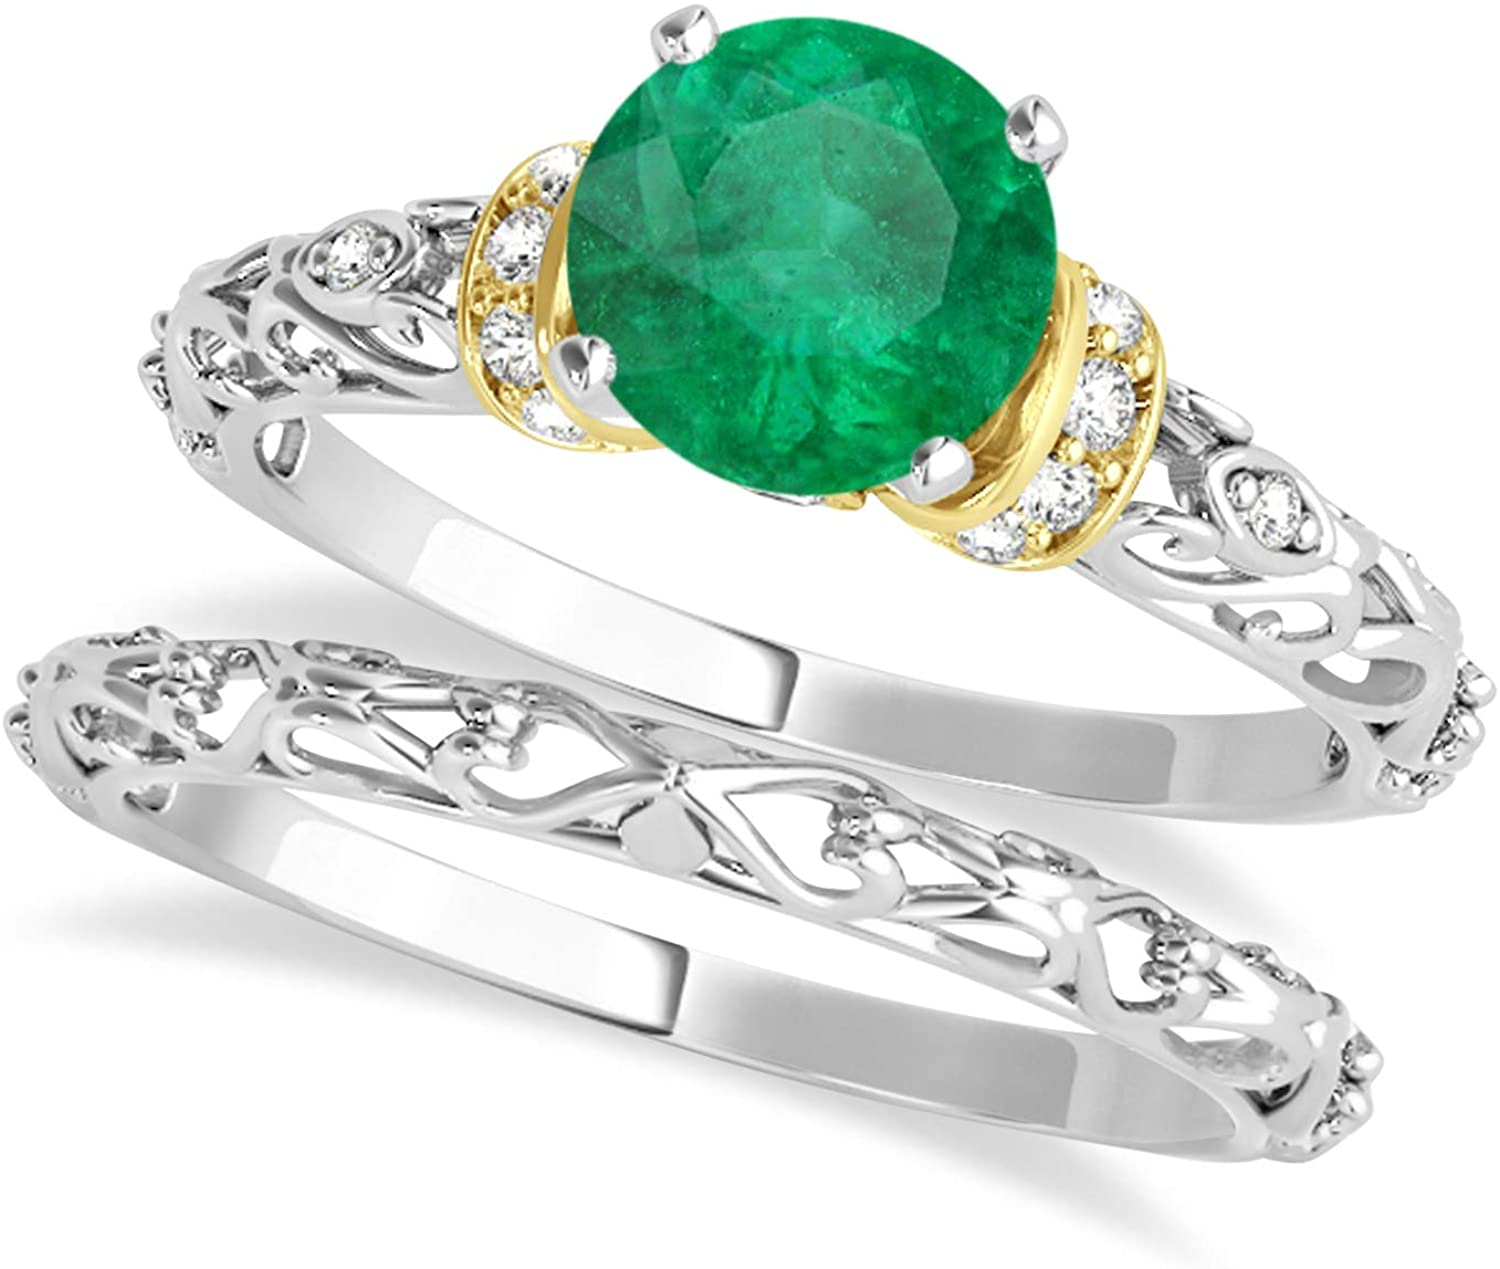 (0.87ct) Two-Tone Gold Emerald and Diamond Antique-Style Bridal Set 18k